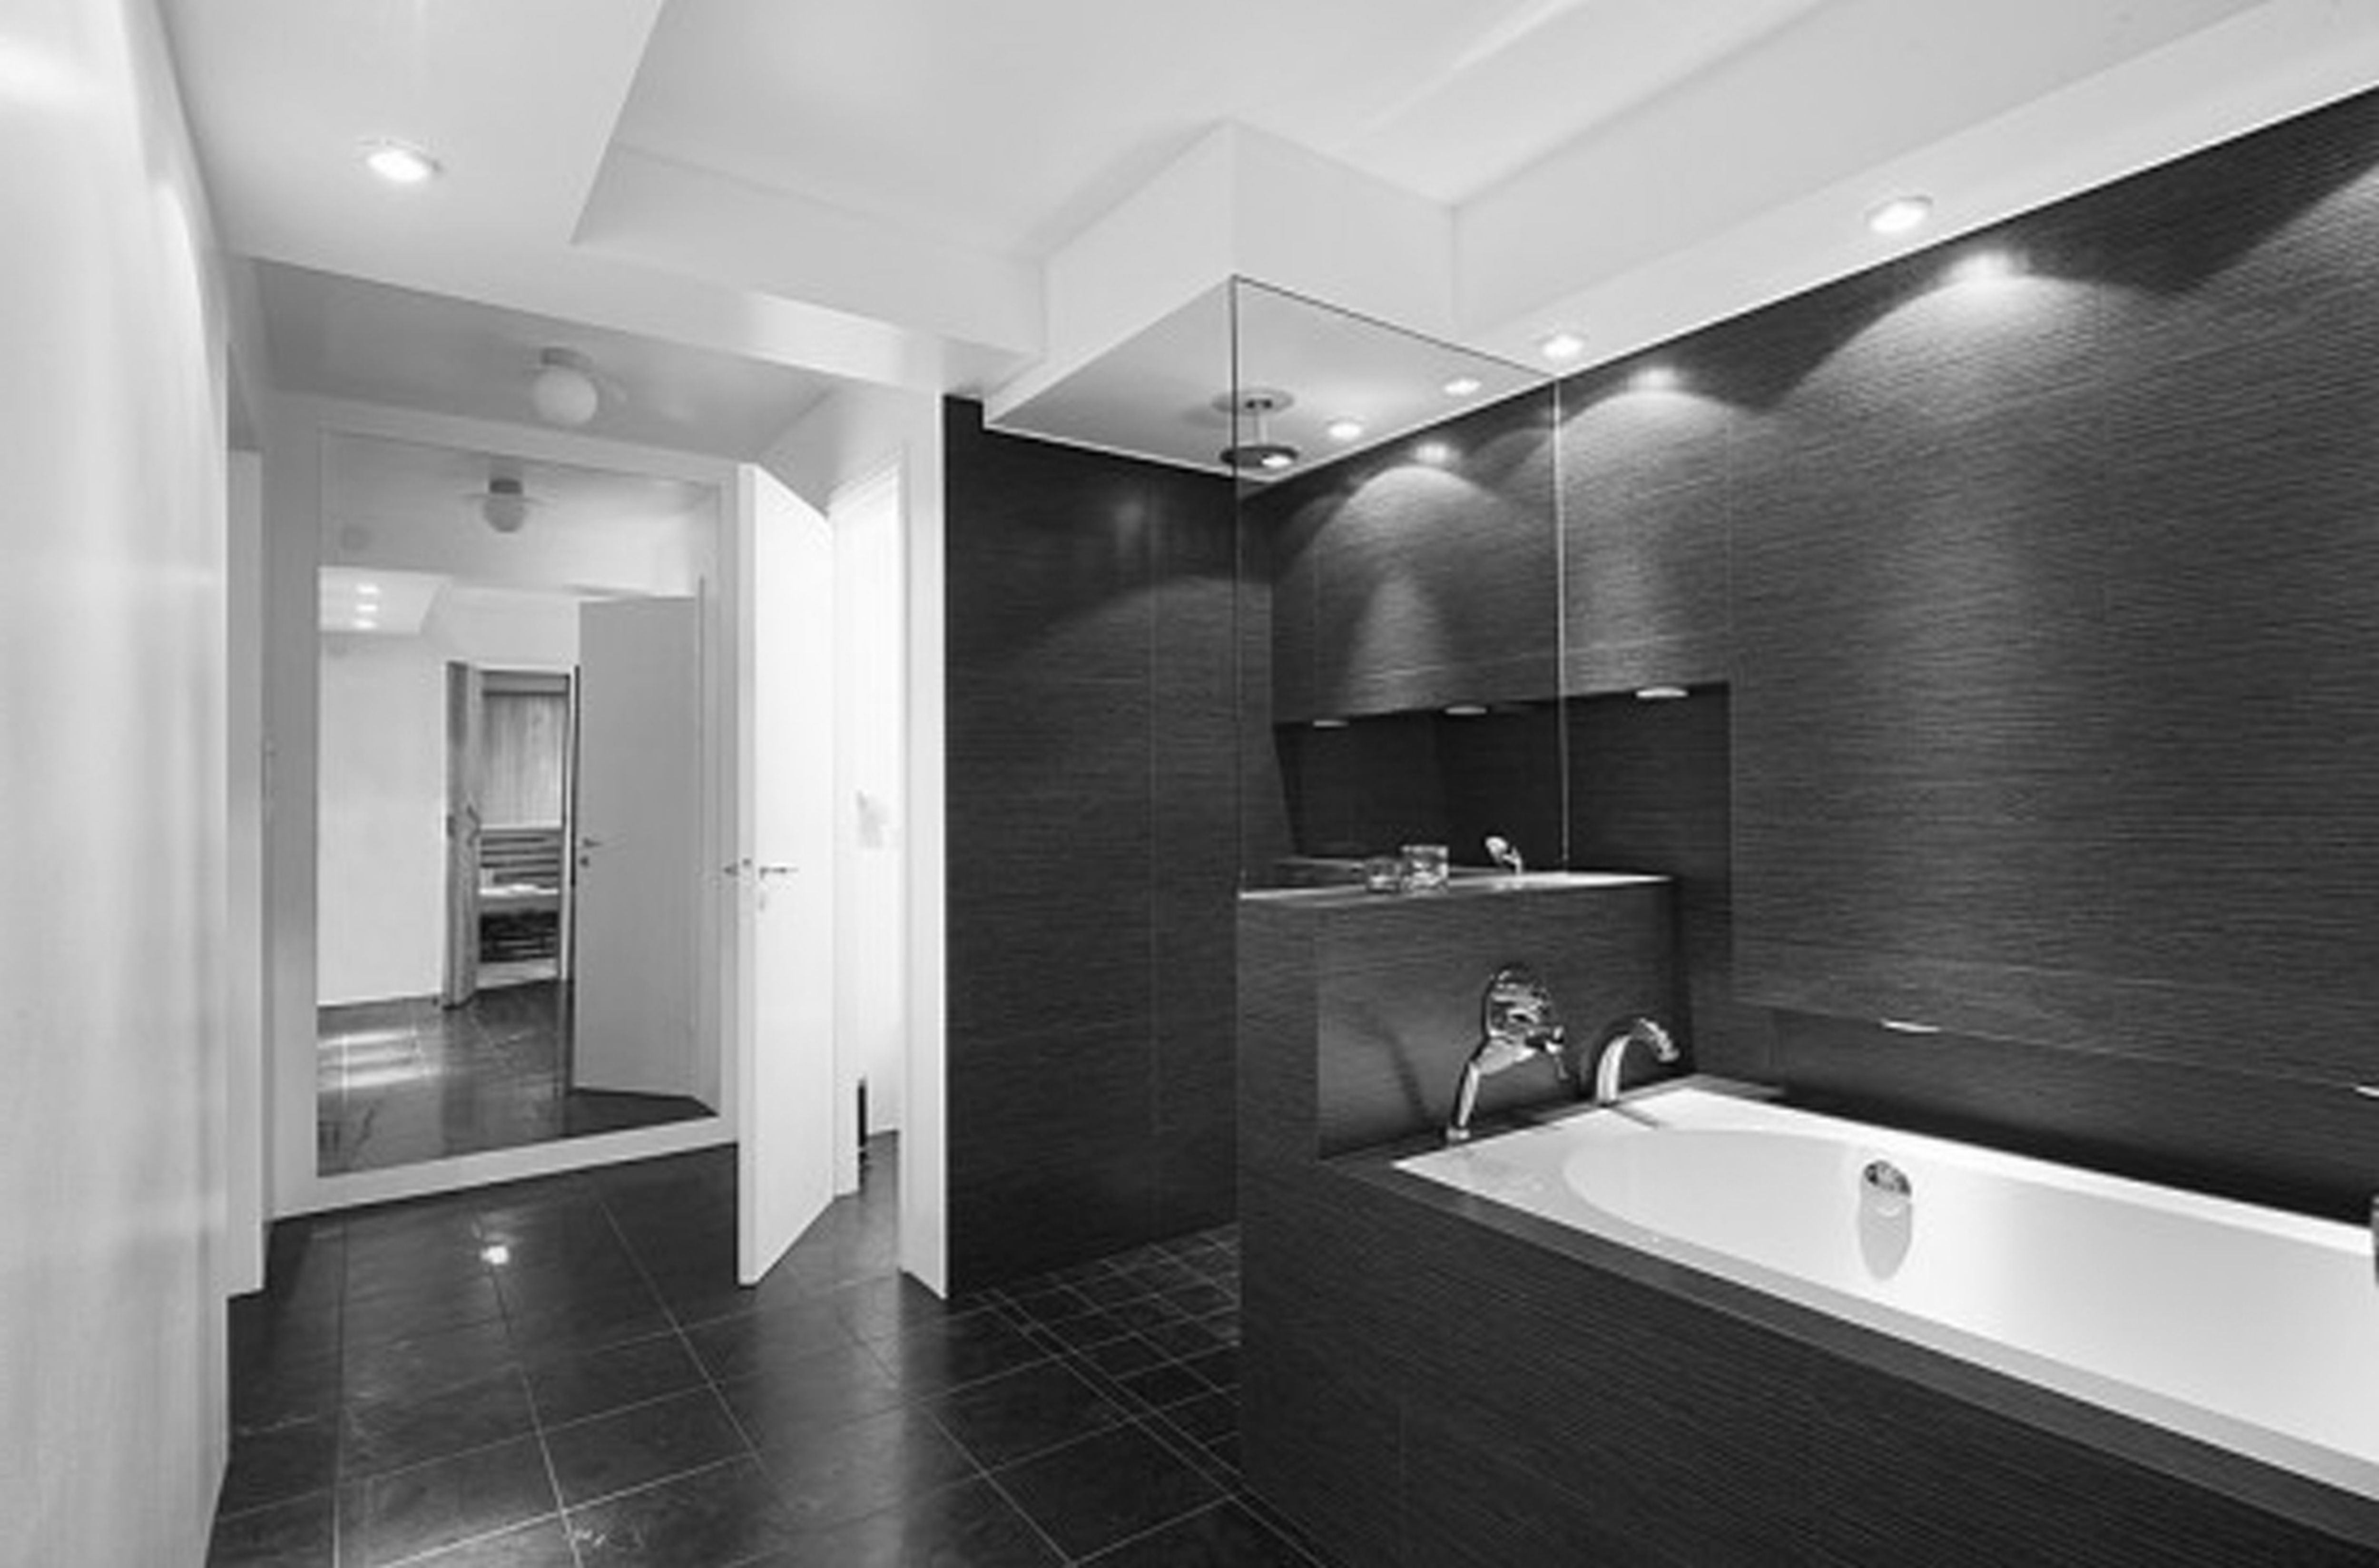 Beauteous Black And White Bathroom Decor Concepts With White – Black and White Bathroom Decor